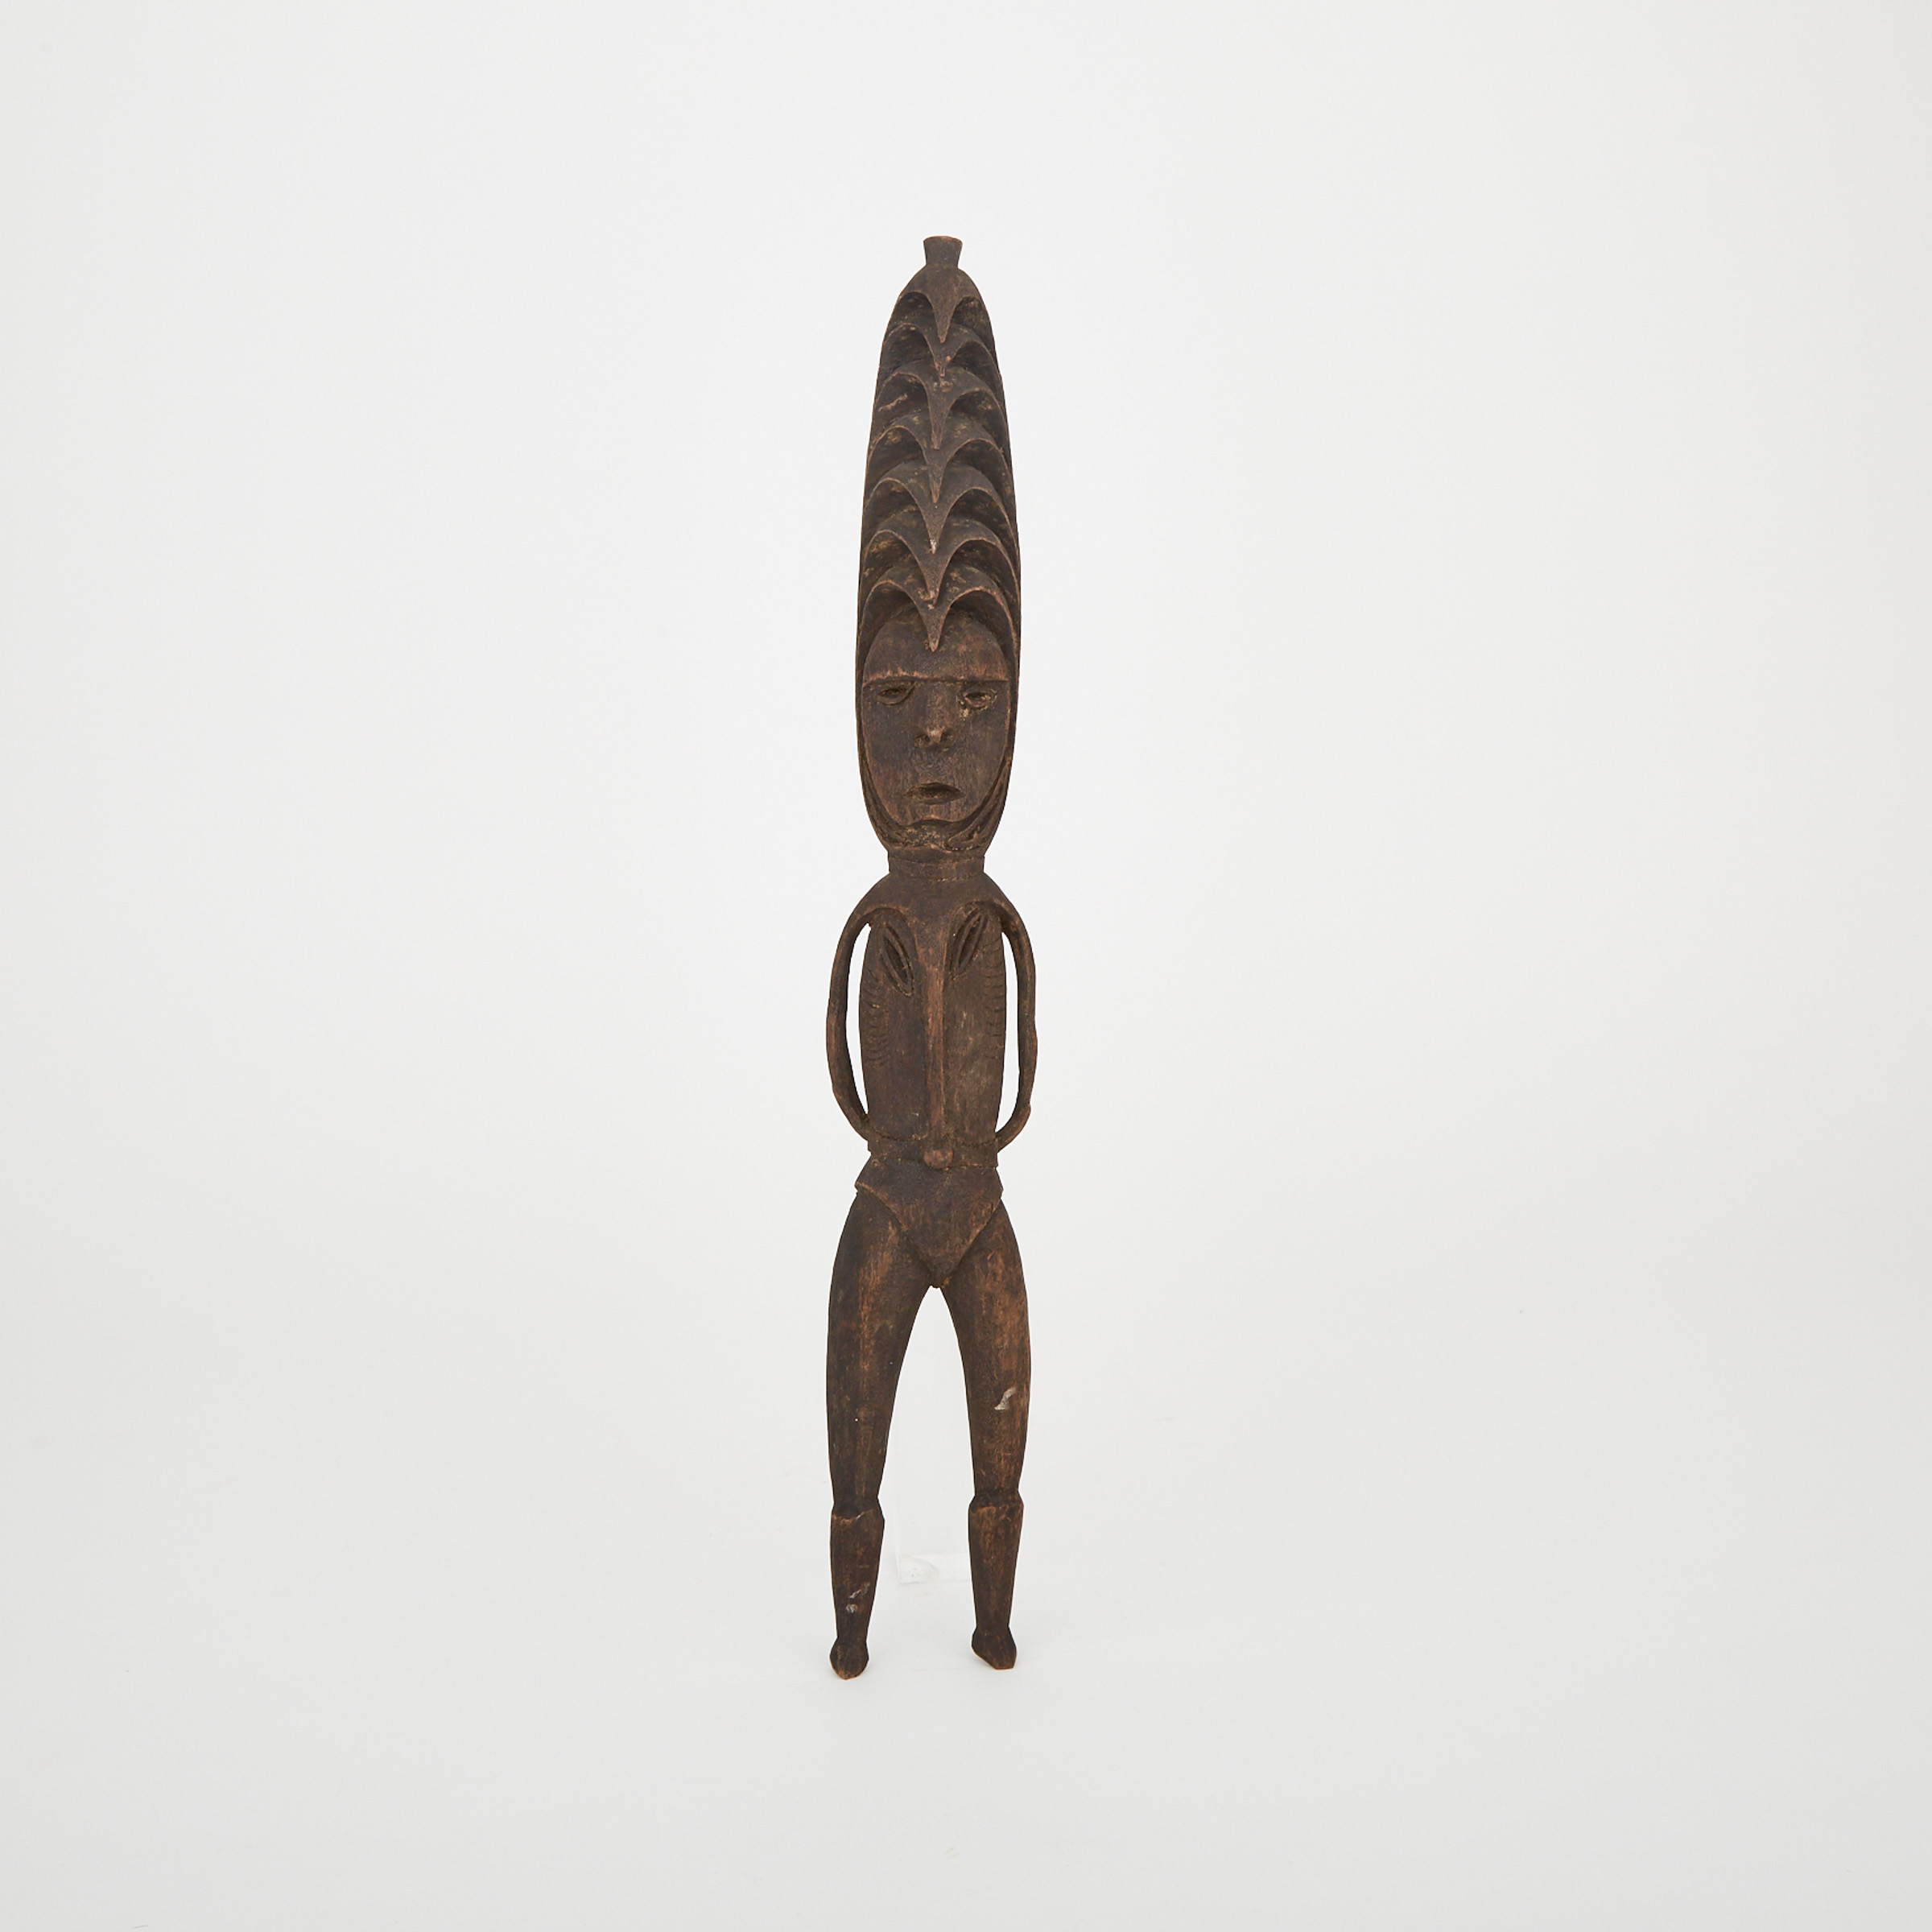 Korewori Figure, Middle Sepik River, Papua New Guinea